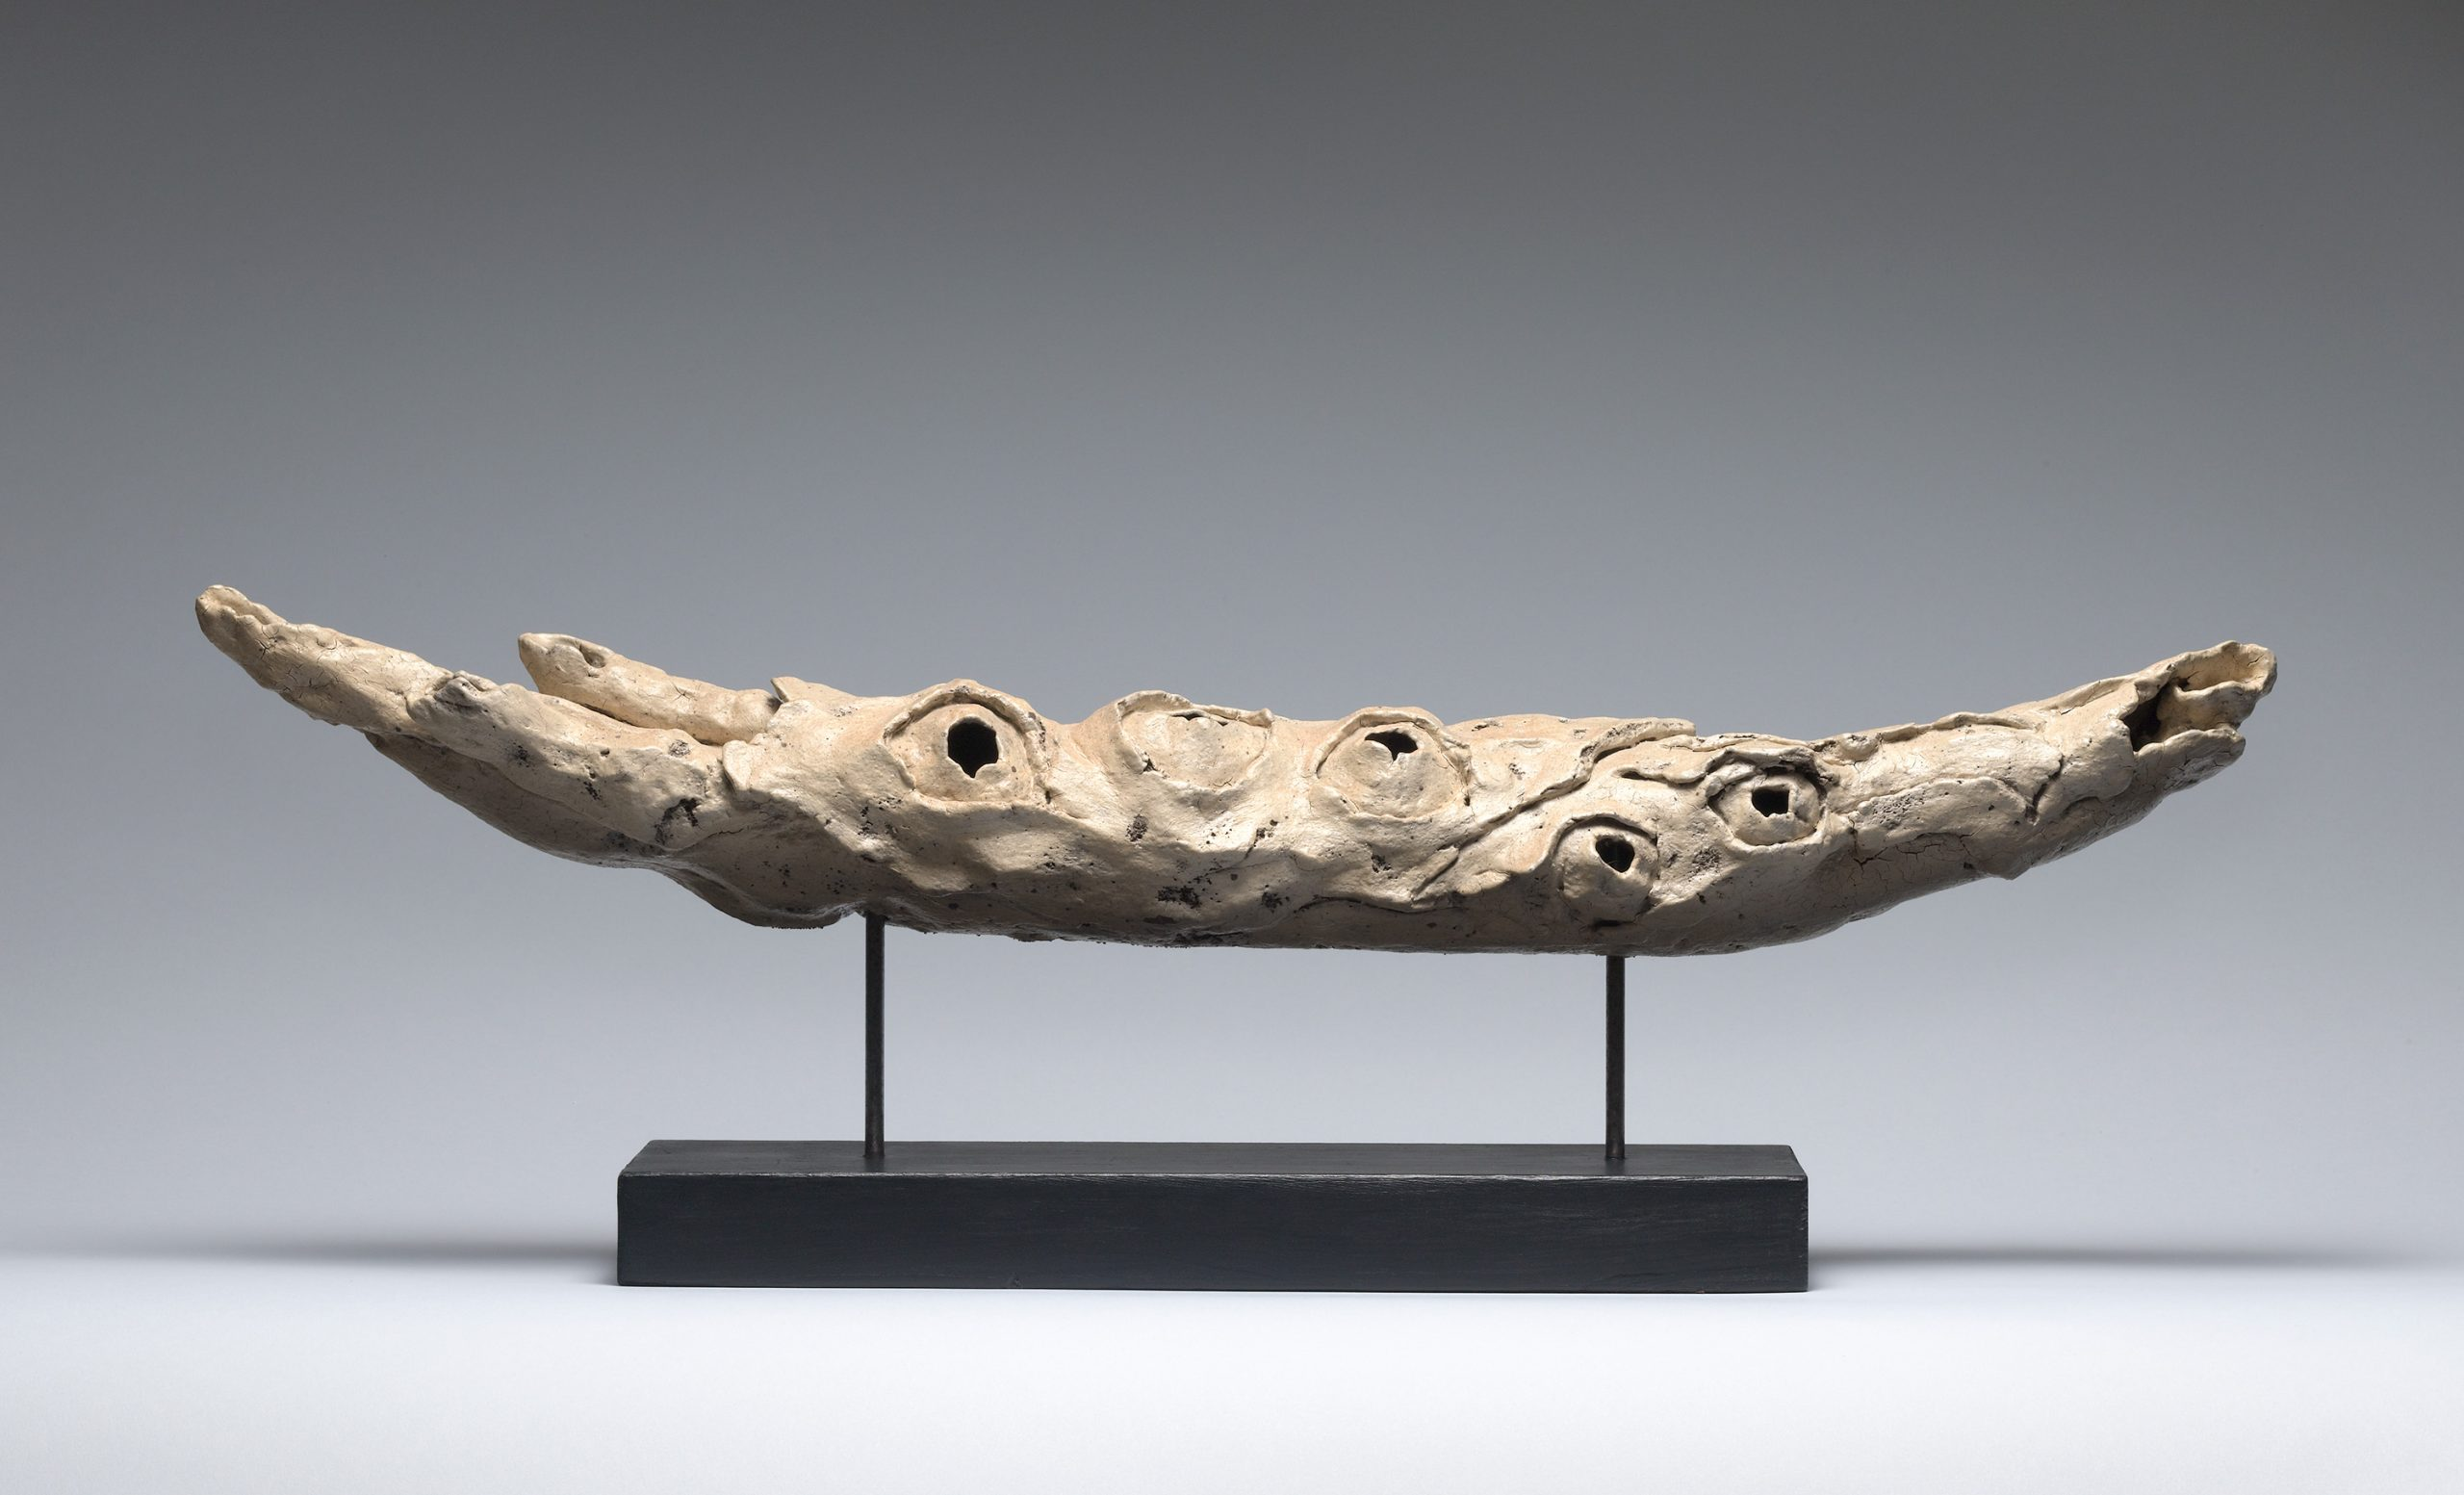 Ceramic beige horn-like horizontal sculpture with holes.